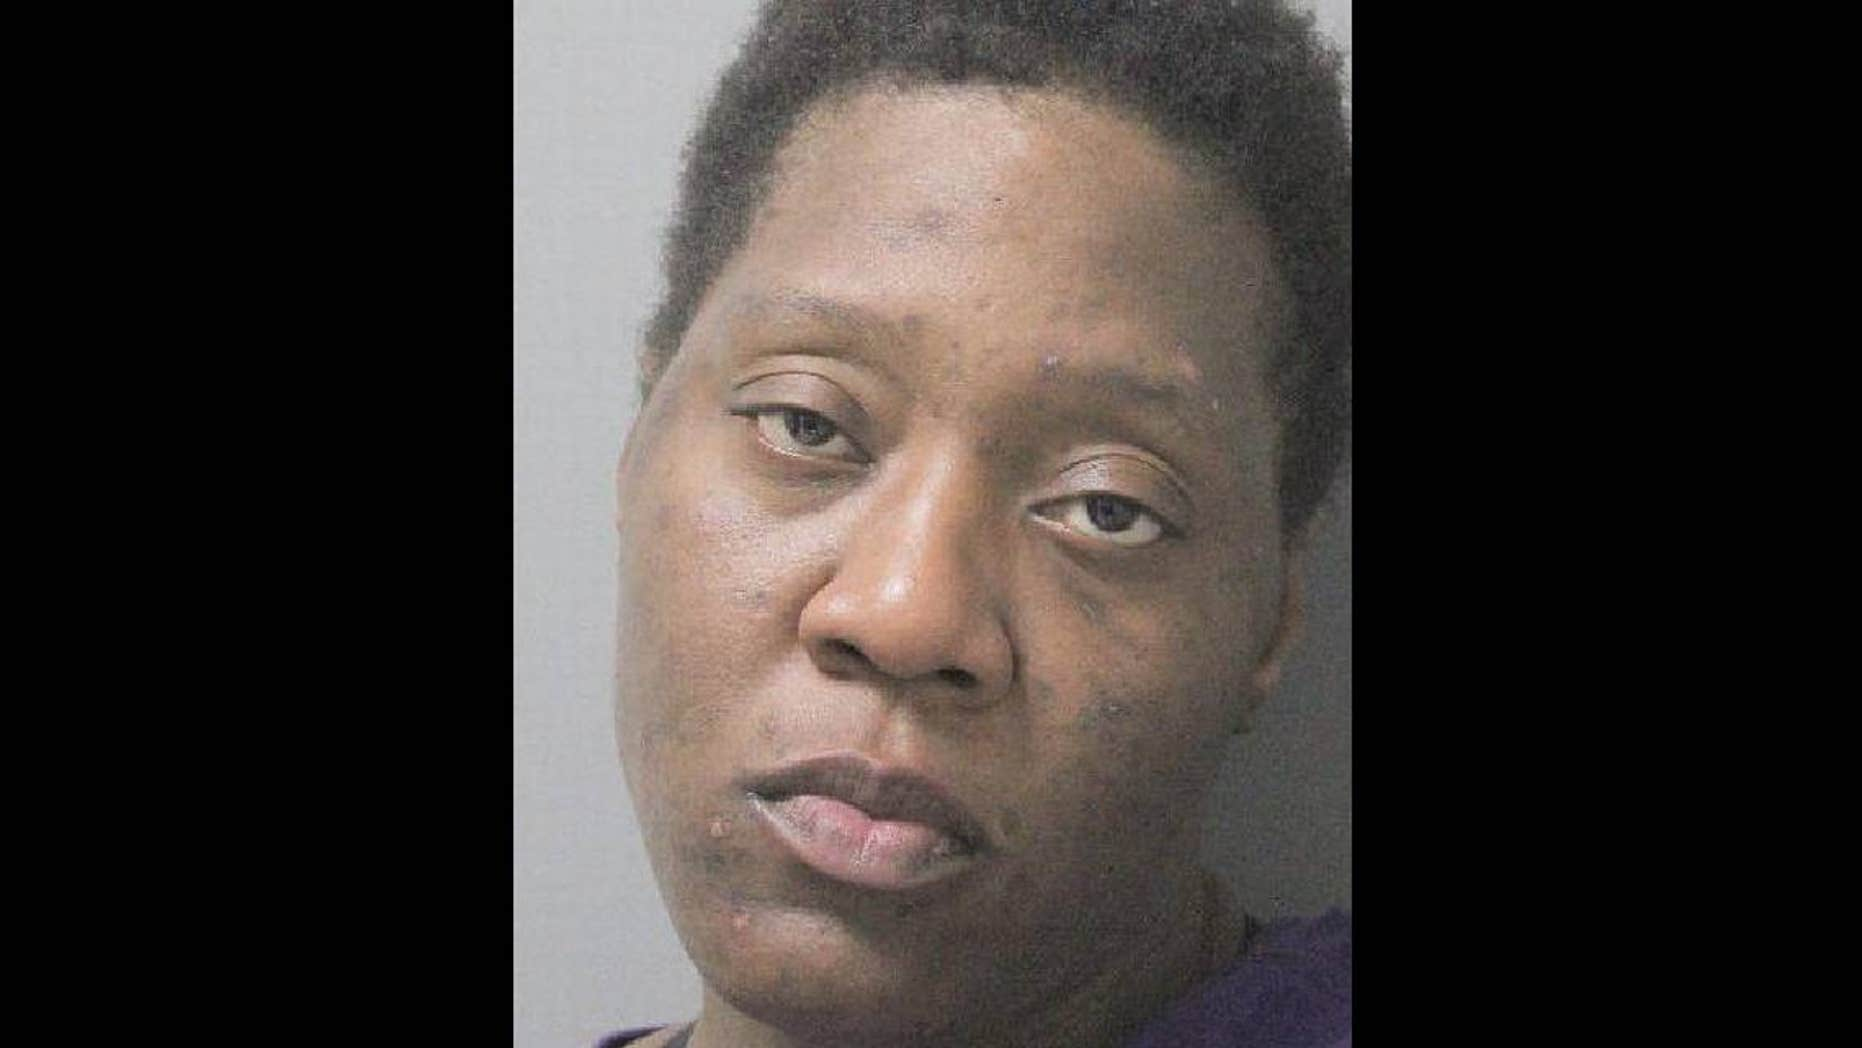 A police affidavit identified Evelyn Washington, 29, as the intruder who was found in a woman's home in Monroe, Louisiana.